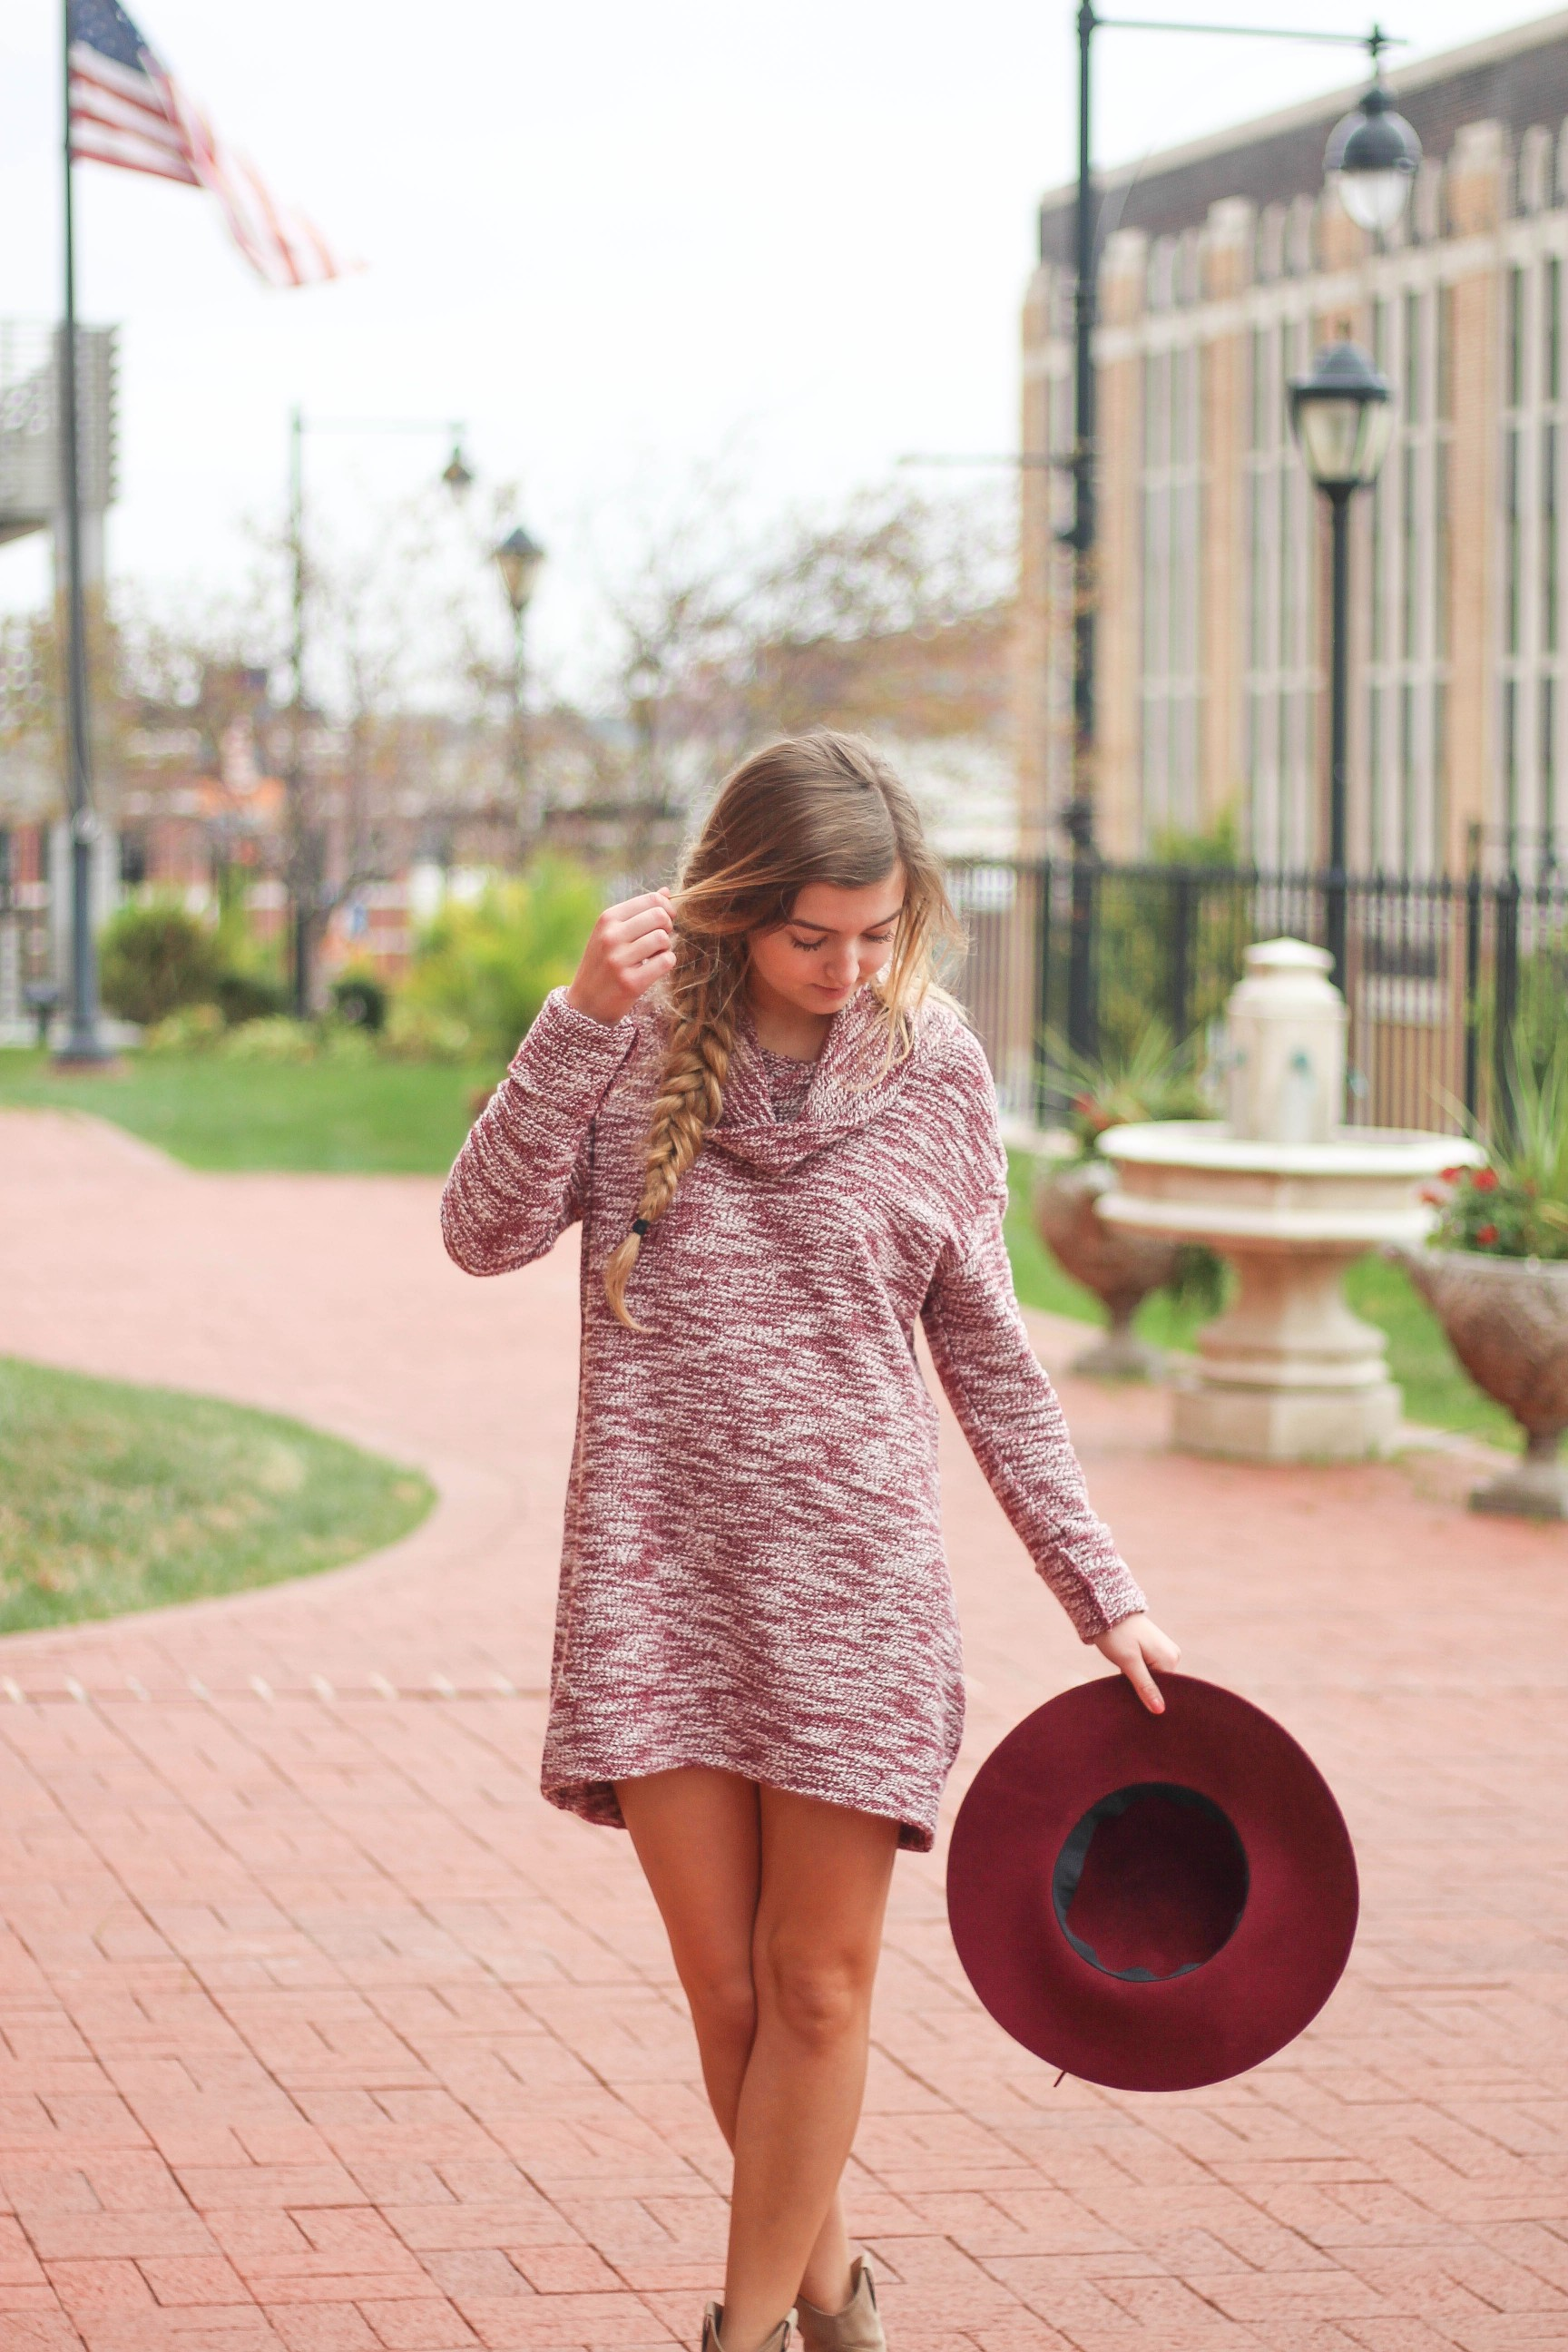 Fall Sweater dress with burgundy her and booties outfit of the day on daily dose of charm by lauren lindmark on dailydoseofcharm.com